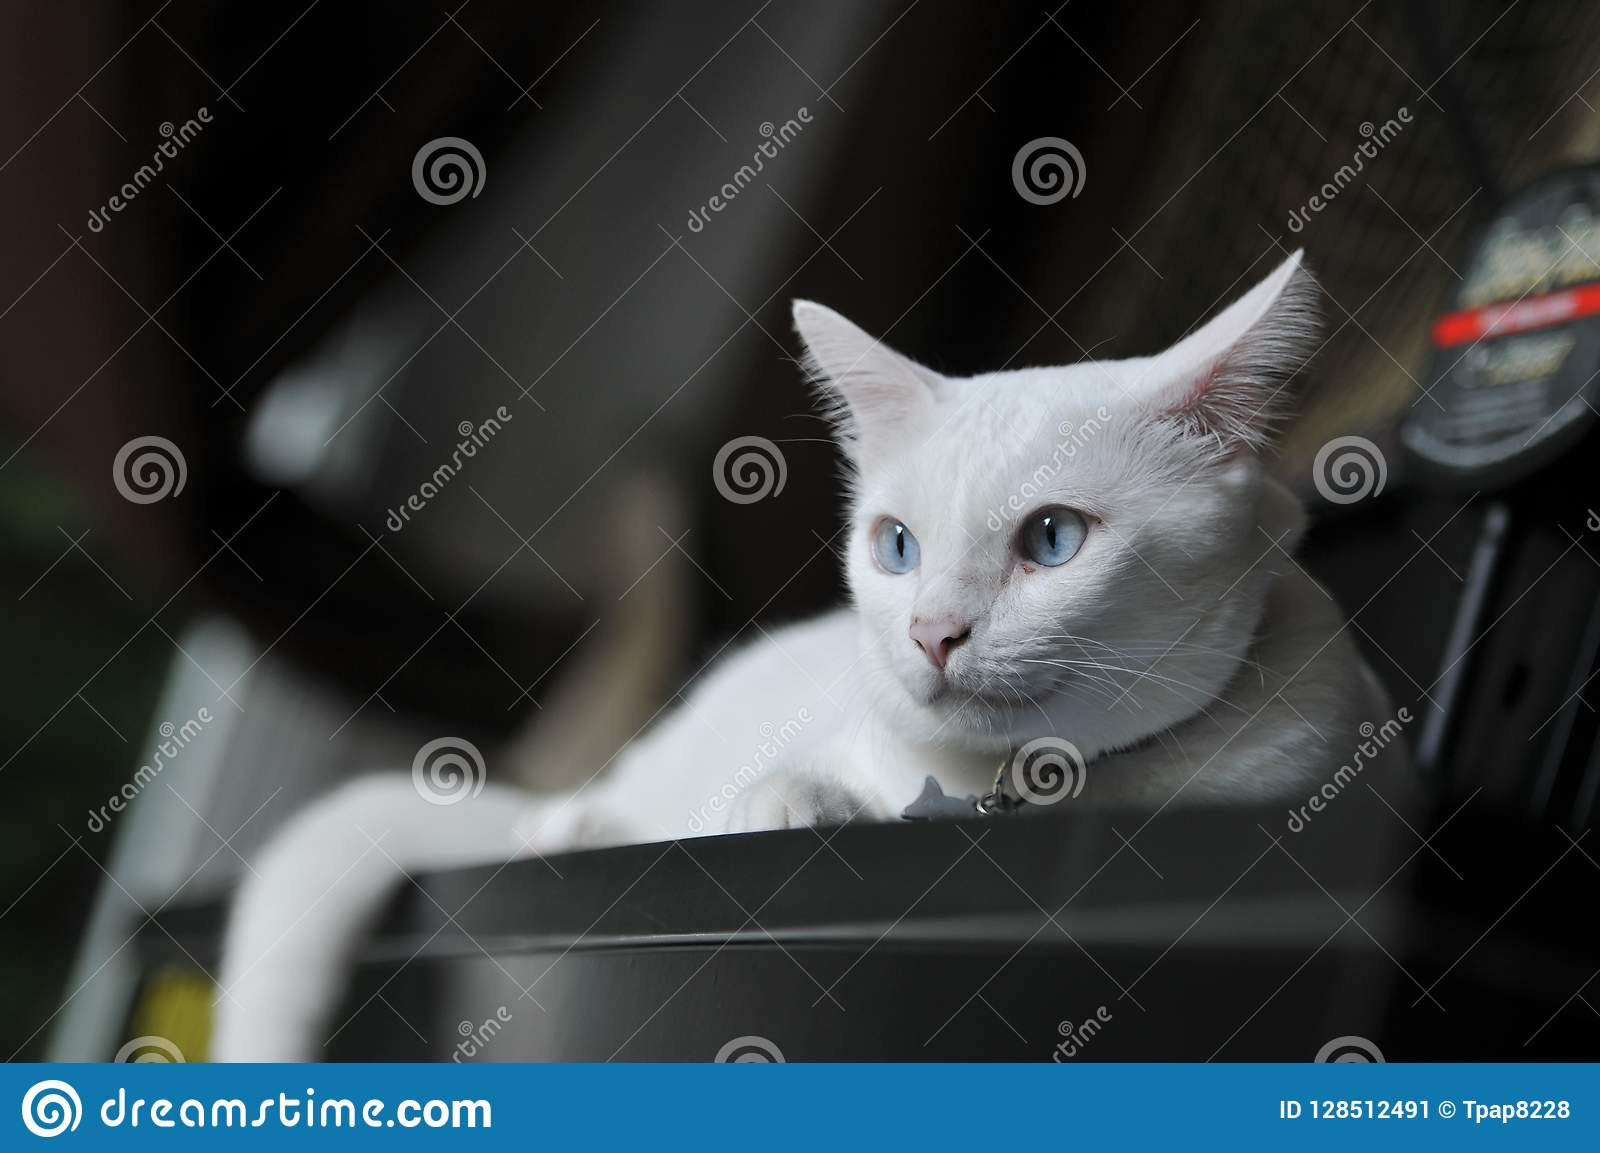 Siamese Cat Is The Thai Domestic Cat Very Cute And Lonely Pet In